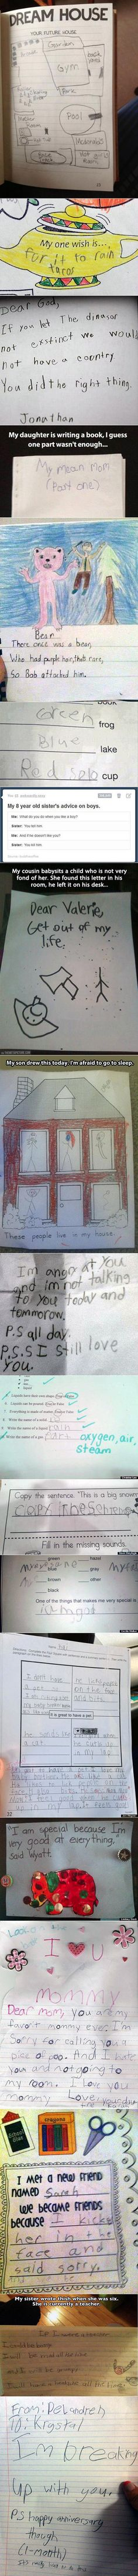 The things kids say...